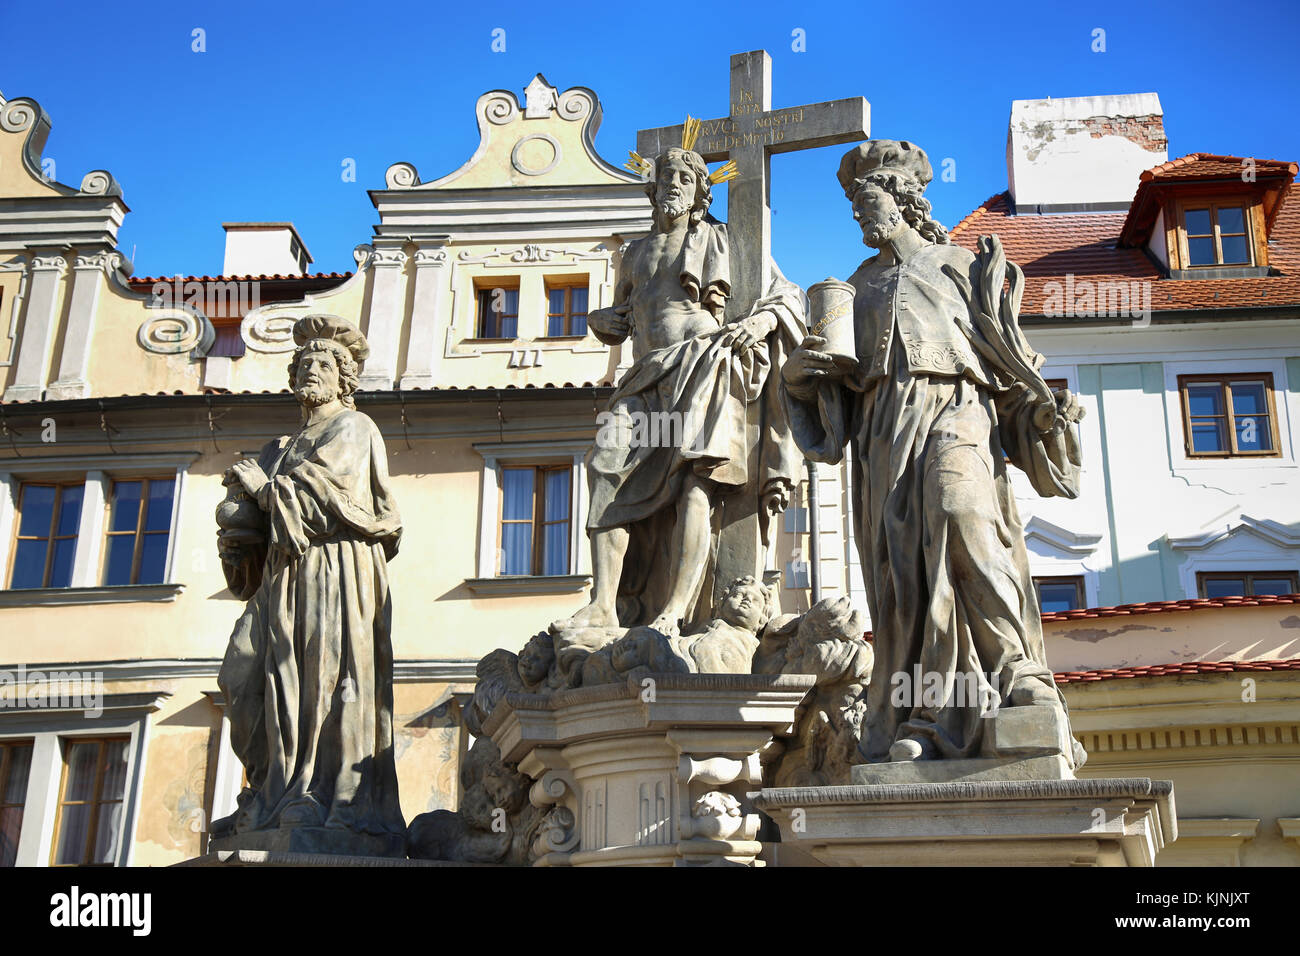 Statuary of Christ the Saviour with St. Cosmas and St. Damian on the Charles Bridge (Karluv Most) in Prague, Czech - Stock Image